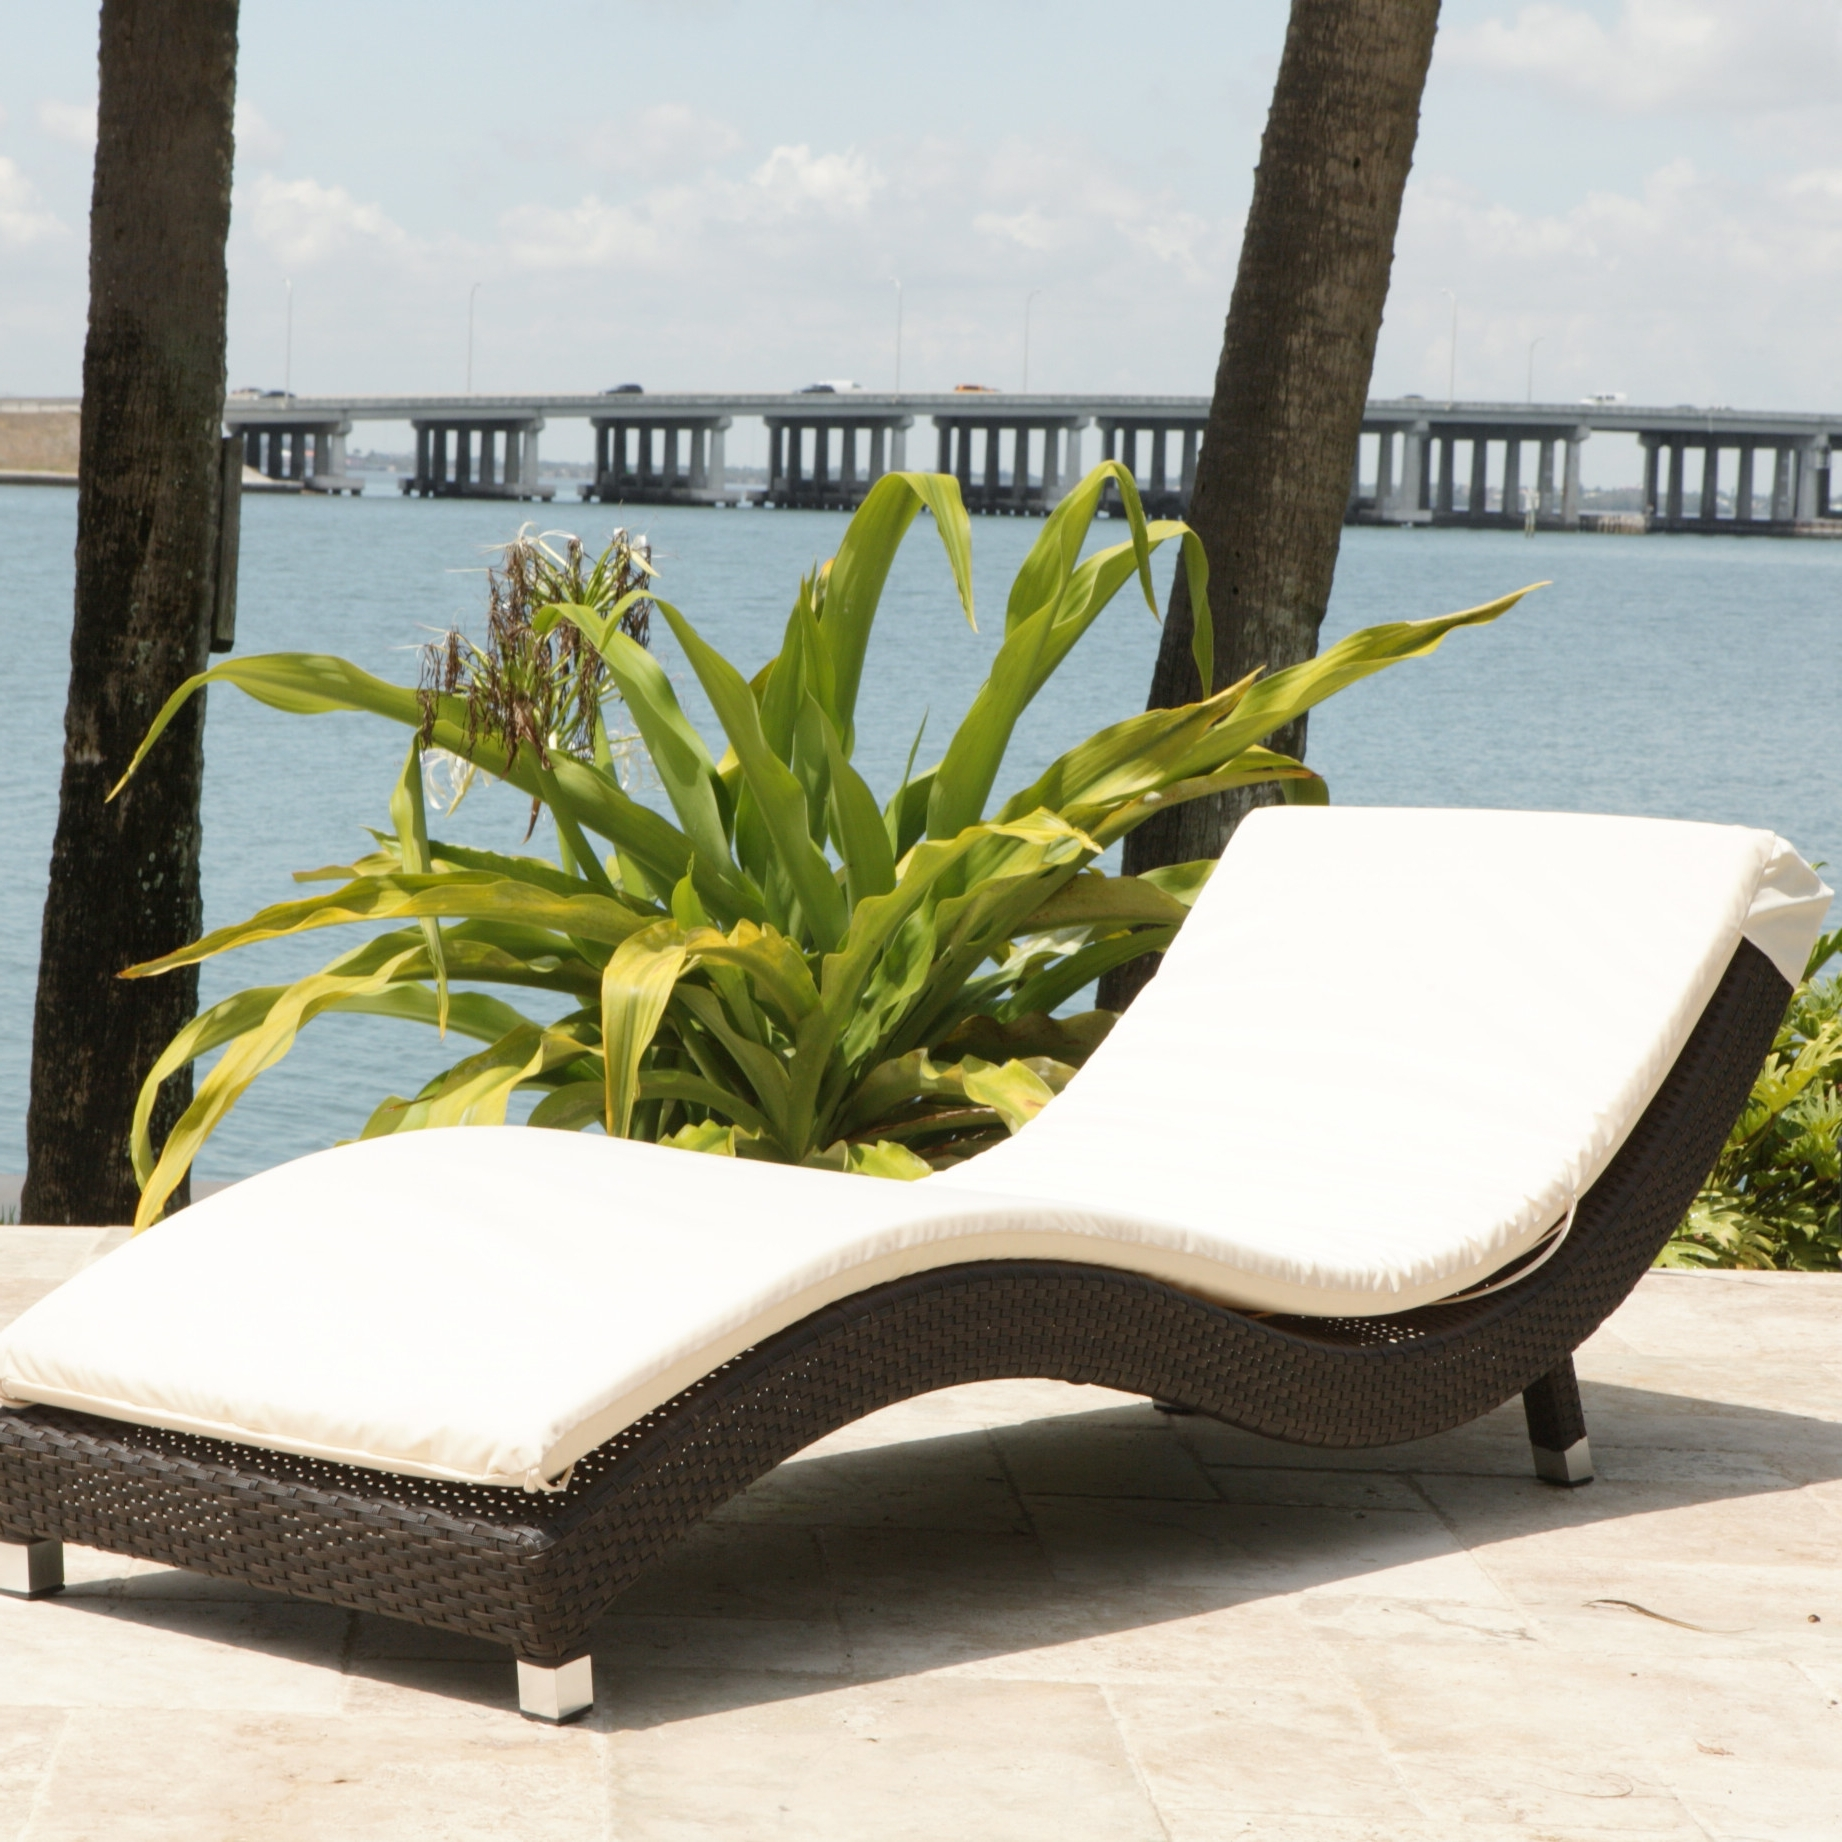 Unique Pool Chaise Lounge Chairs — Bed And Shower : Decorating Throughout Famous Contemporary Outdoor Chaise Lounge Chairs (View 13 of 15)